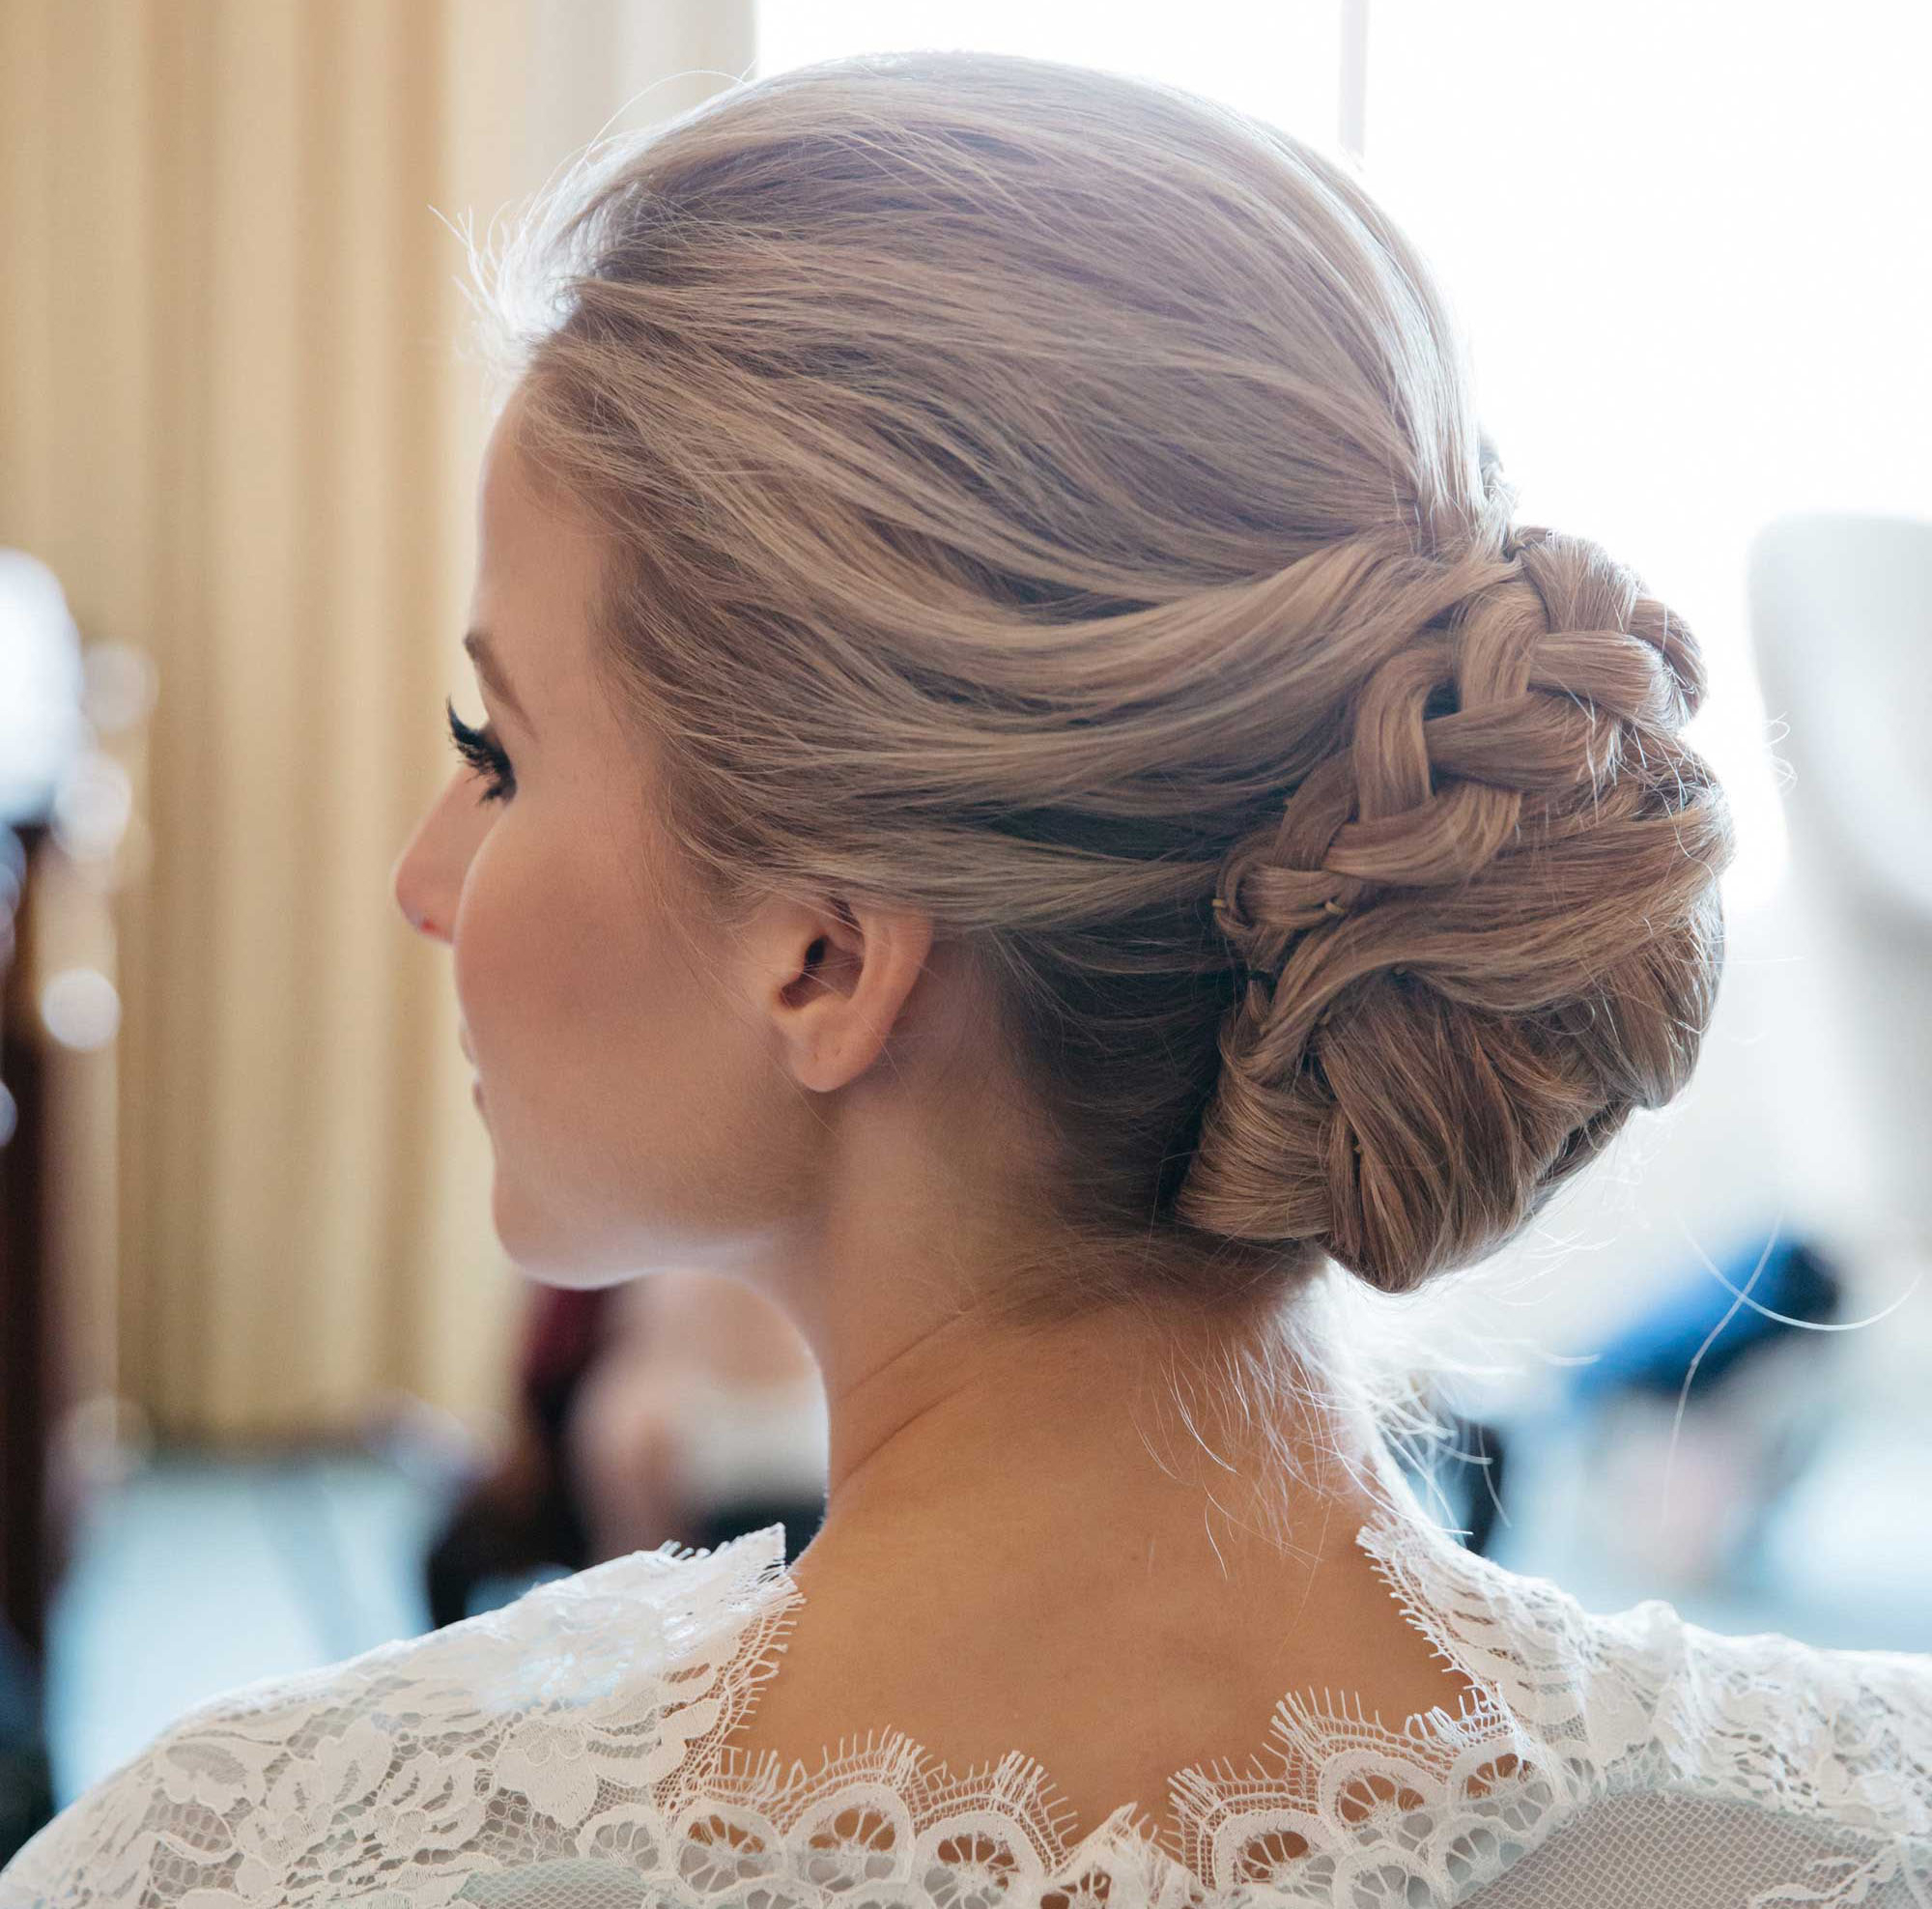 Most Up To Date Lovely Bouffant Updo Hairstyles For Long Hair Regarding Braided Hairstyles: 5 Ideas For Your Wedding Look – Inside Weddings (View 12 of 20)